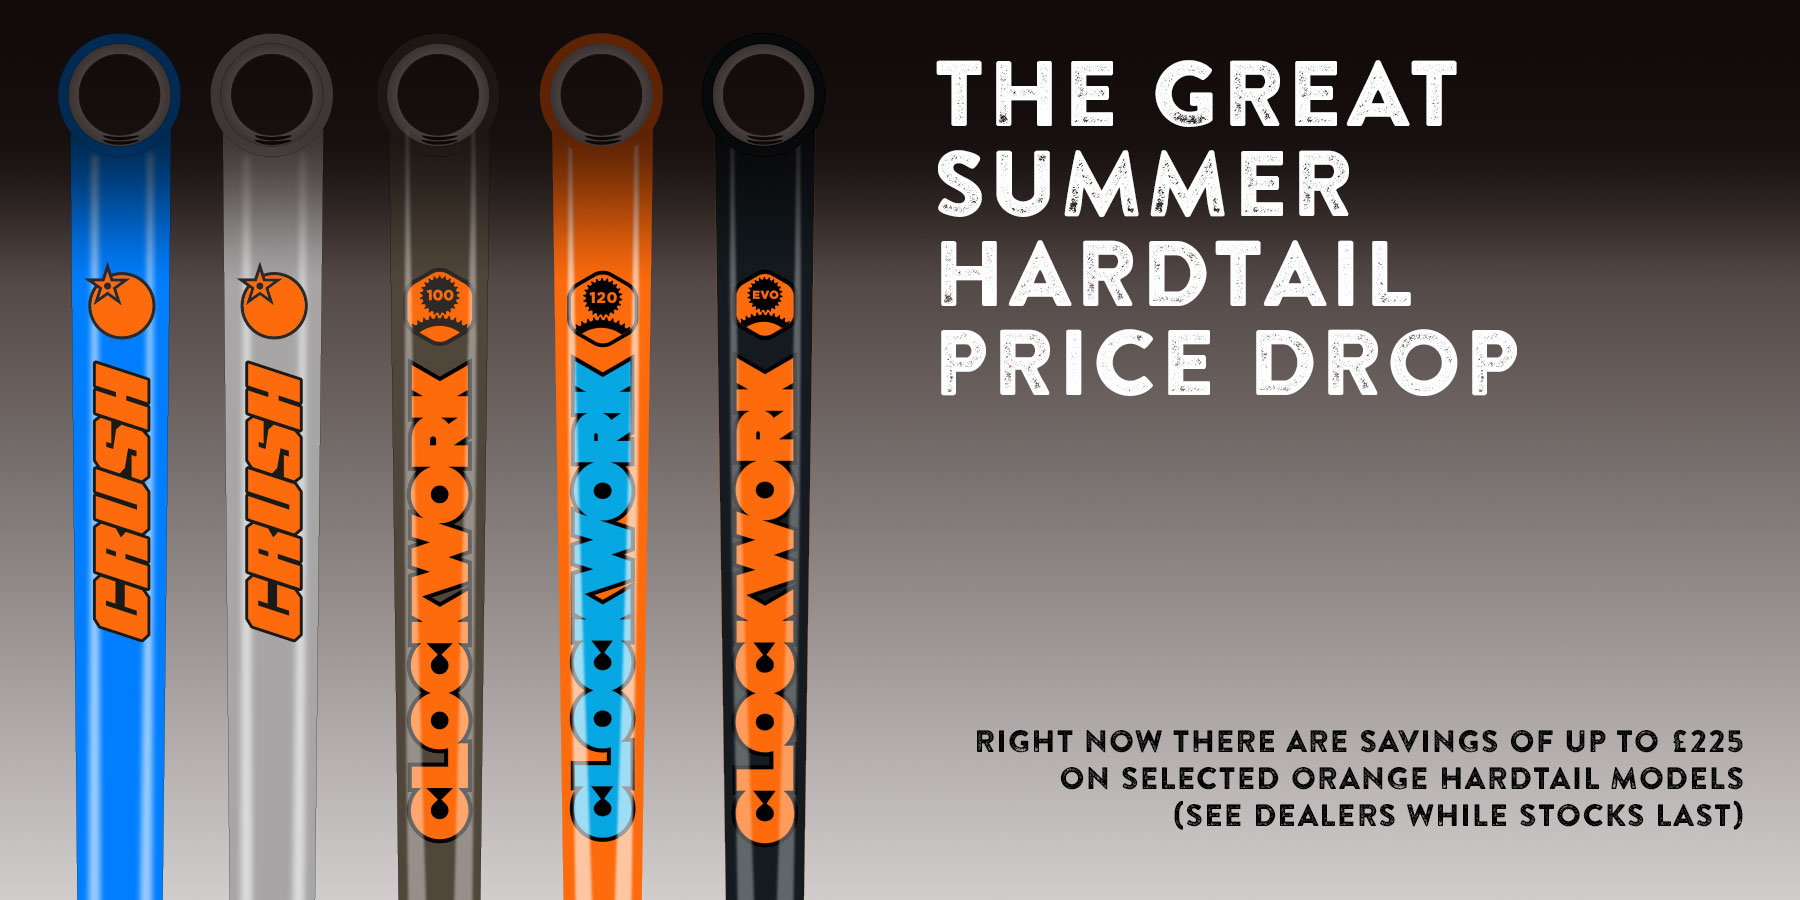 Save up to £225 on selected Orange hardtails.